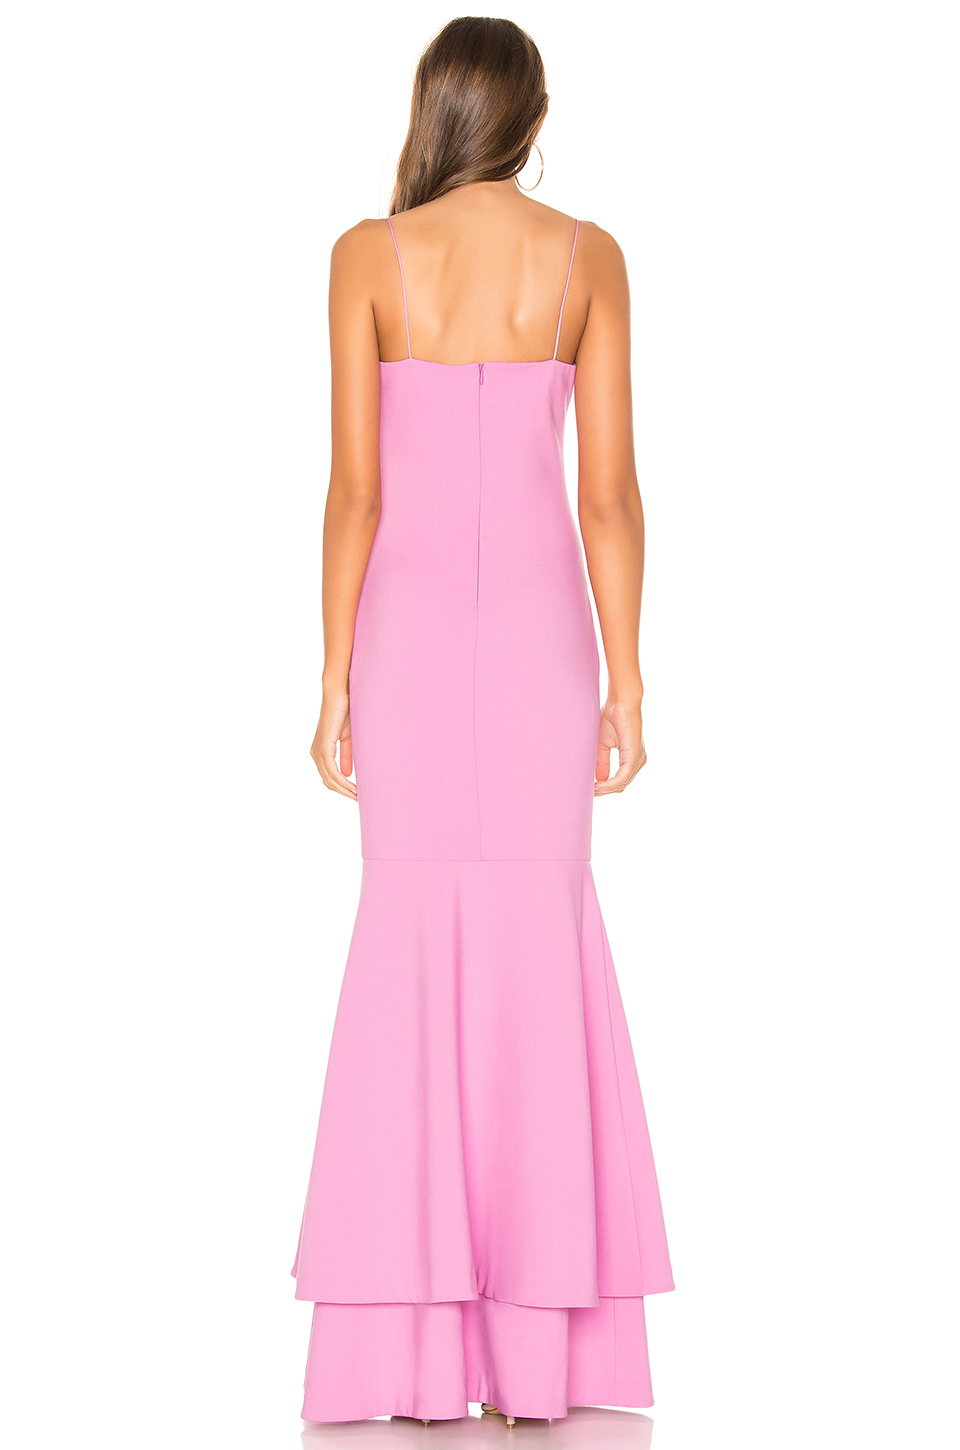 221e52791d3 Buy Original LIKELY Aurora Gown at Indonesia